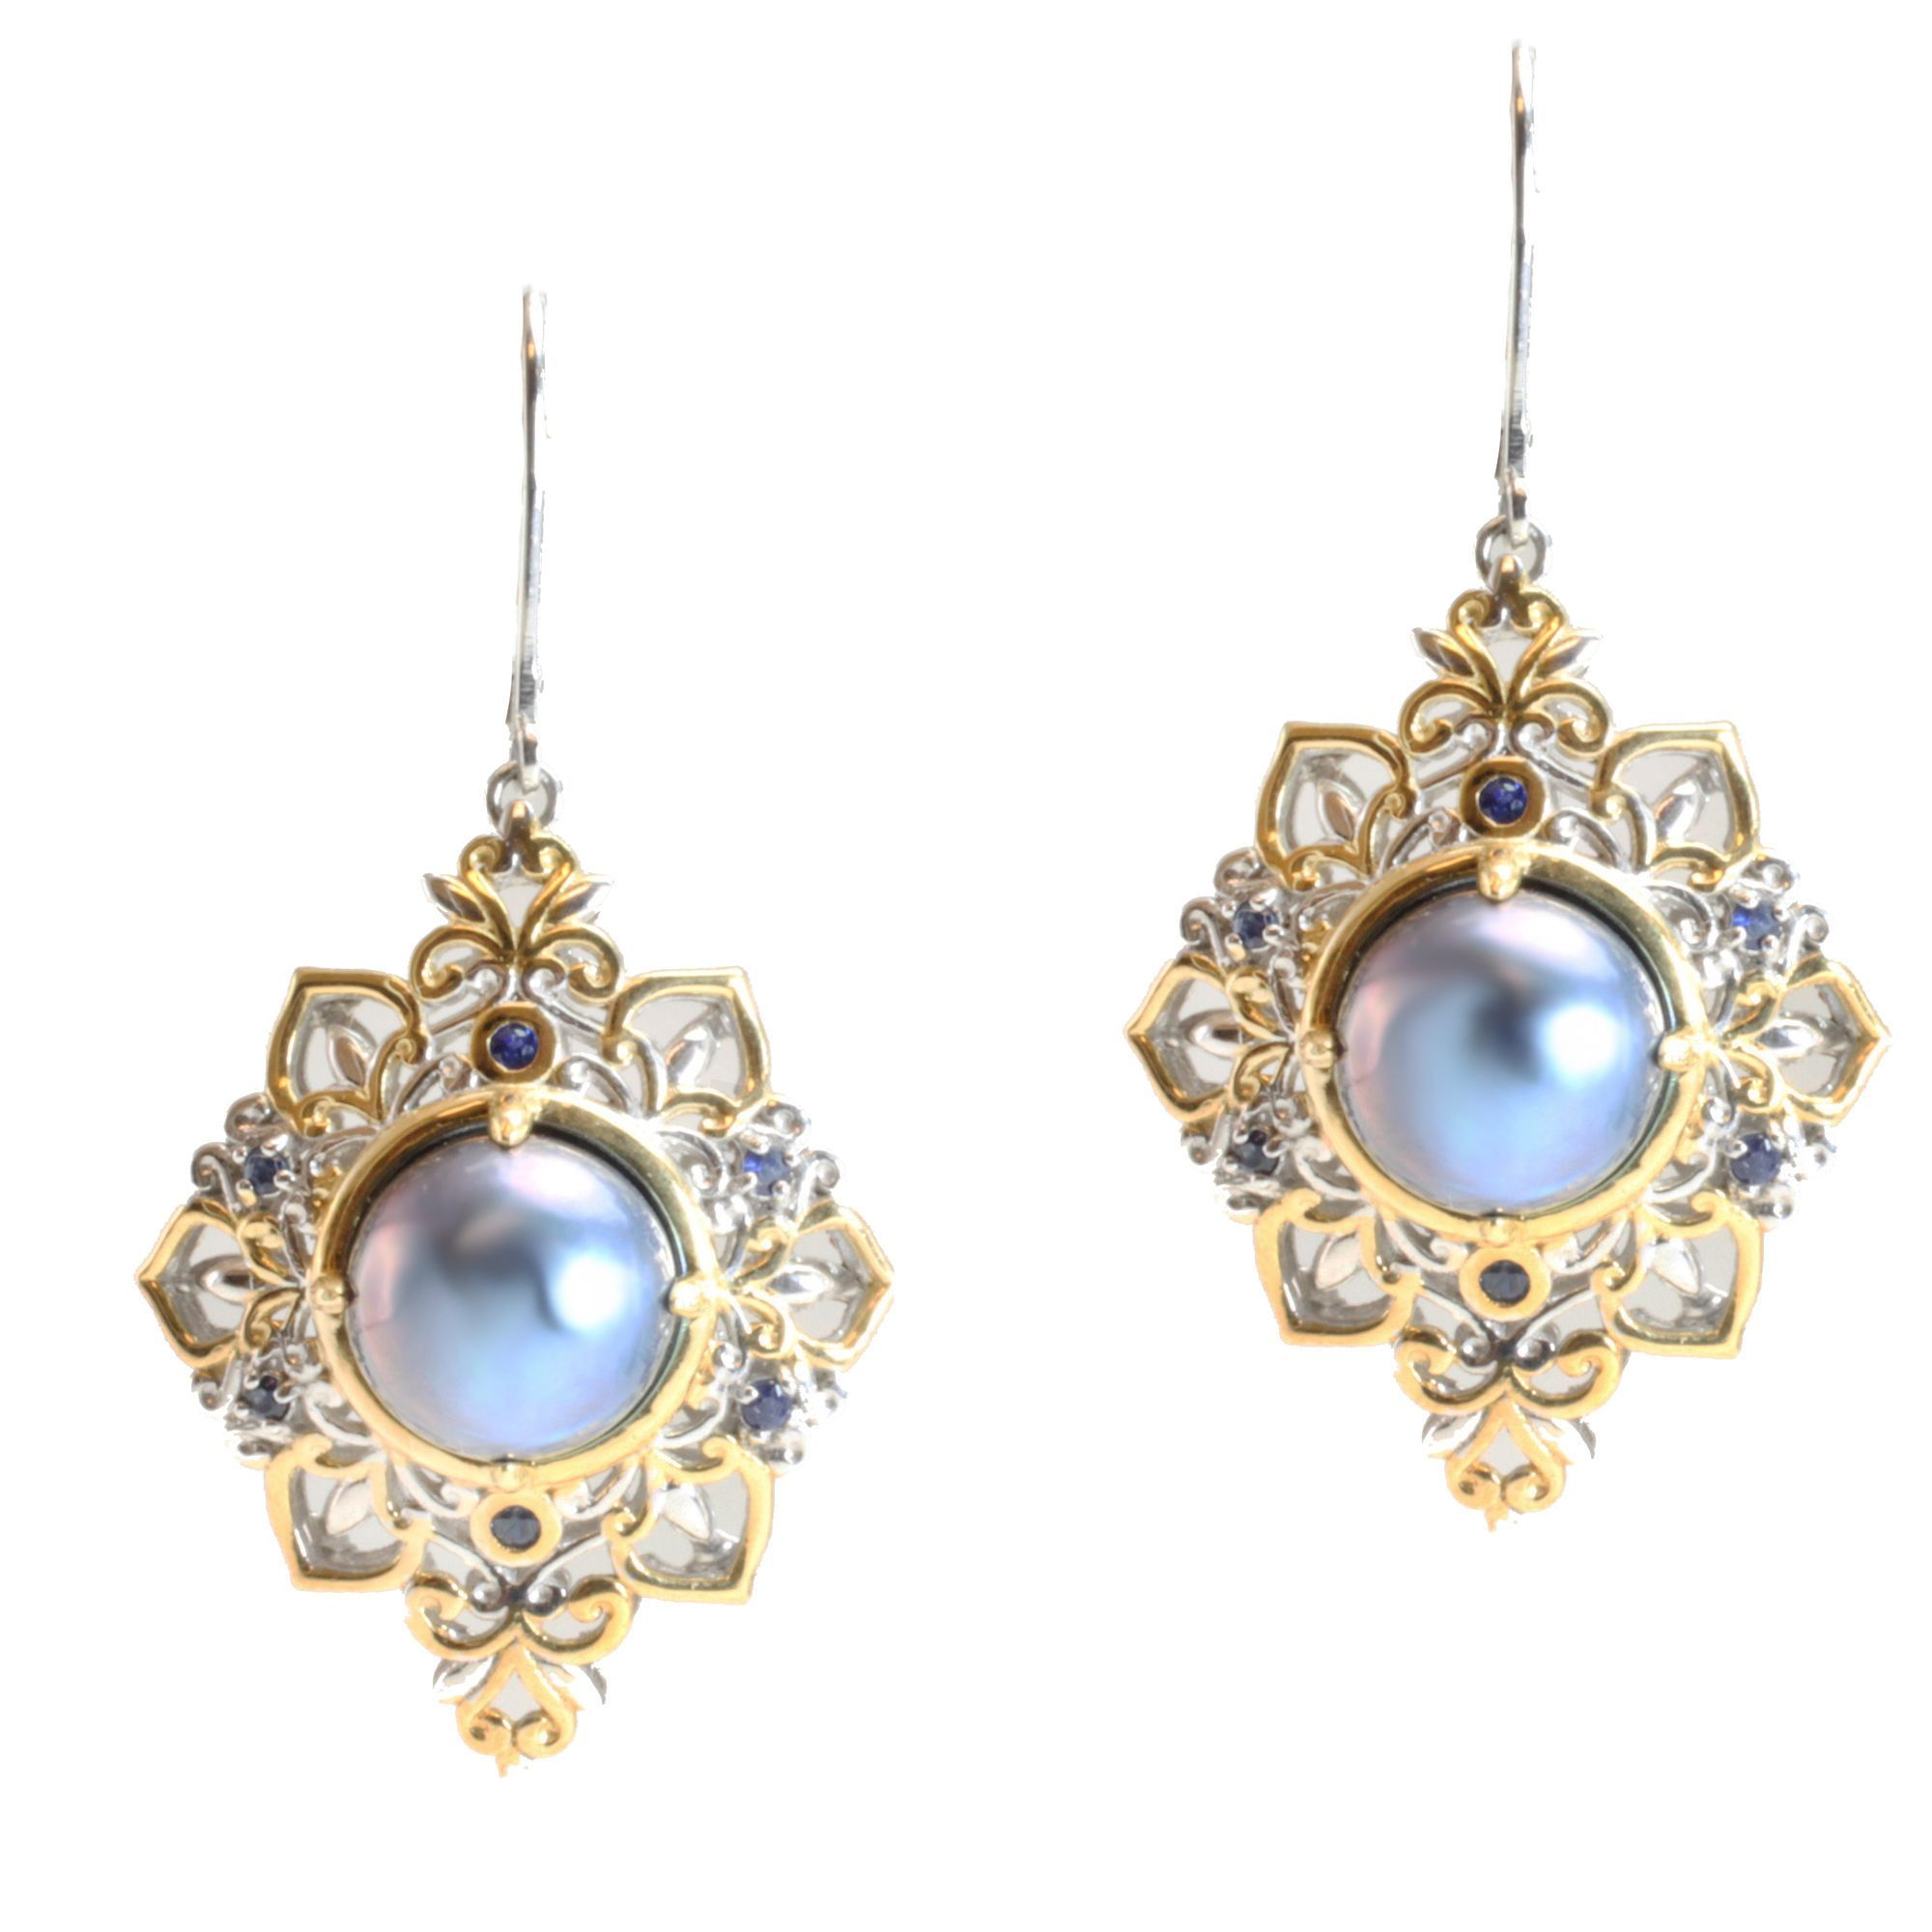 Michael Valitutti Two-tone Mabe Pearl and Sapphire Earrings